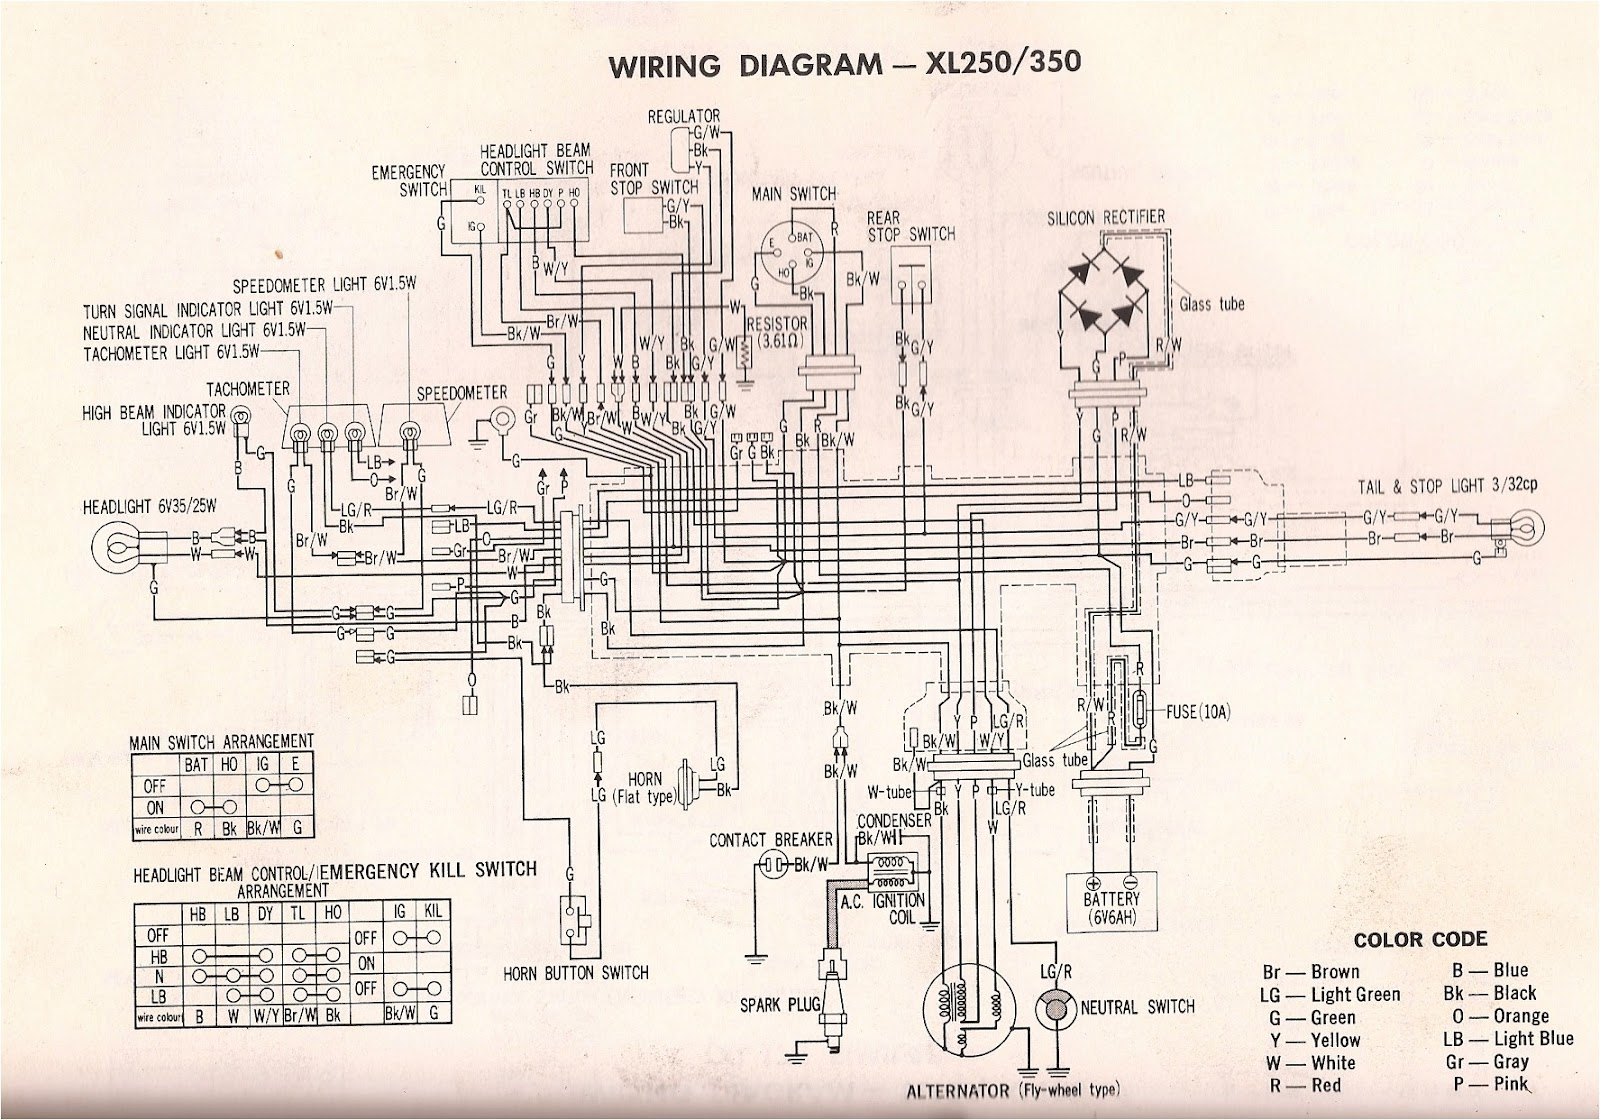 XL350+Wiring+diagram+S r4l xl350 wiring diagram (and xl250)  at gsmportal.co